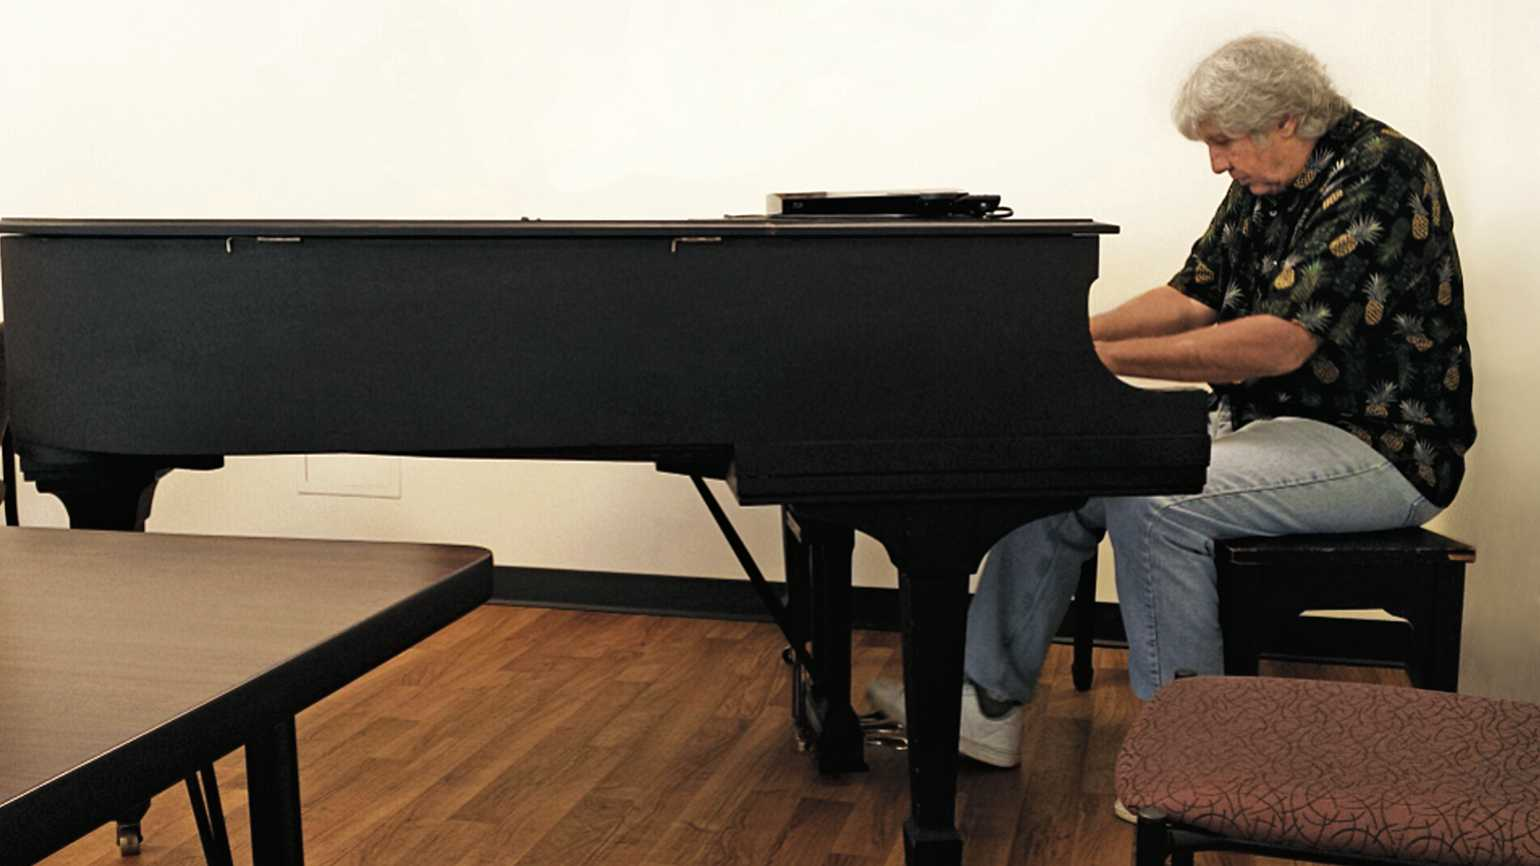 Bill Marinelli feels most at home making music on a piano